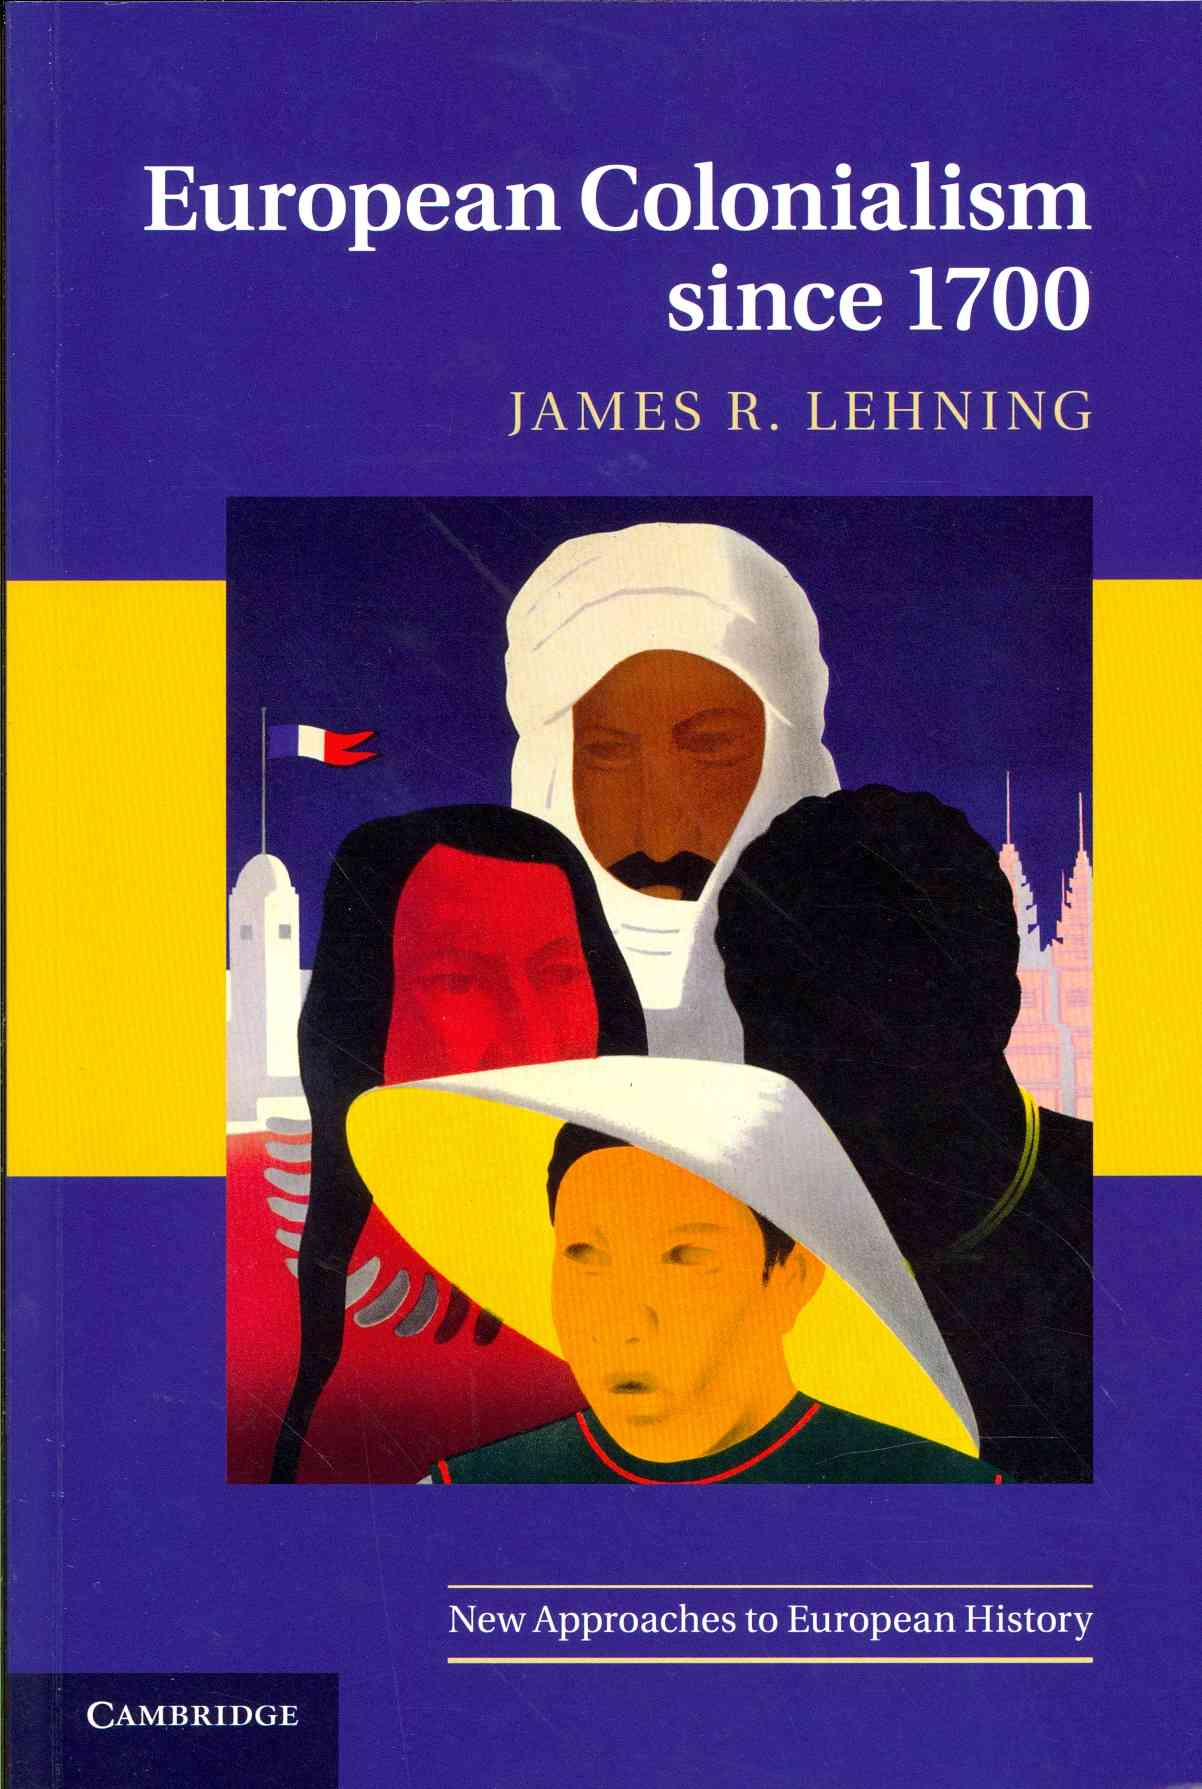 European Colonialism Since 1700 By Lehning, James